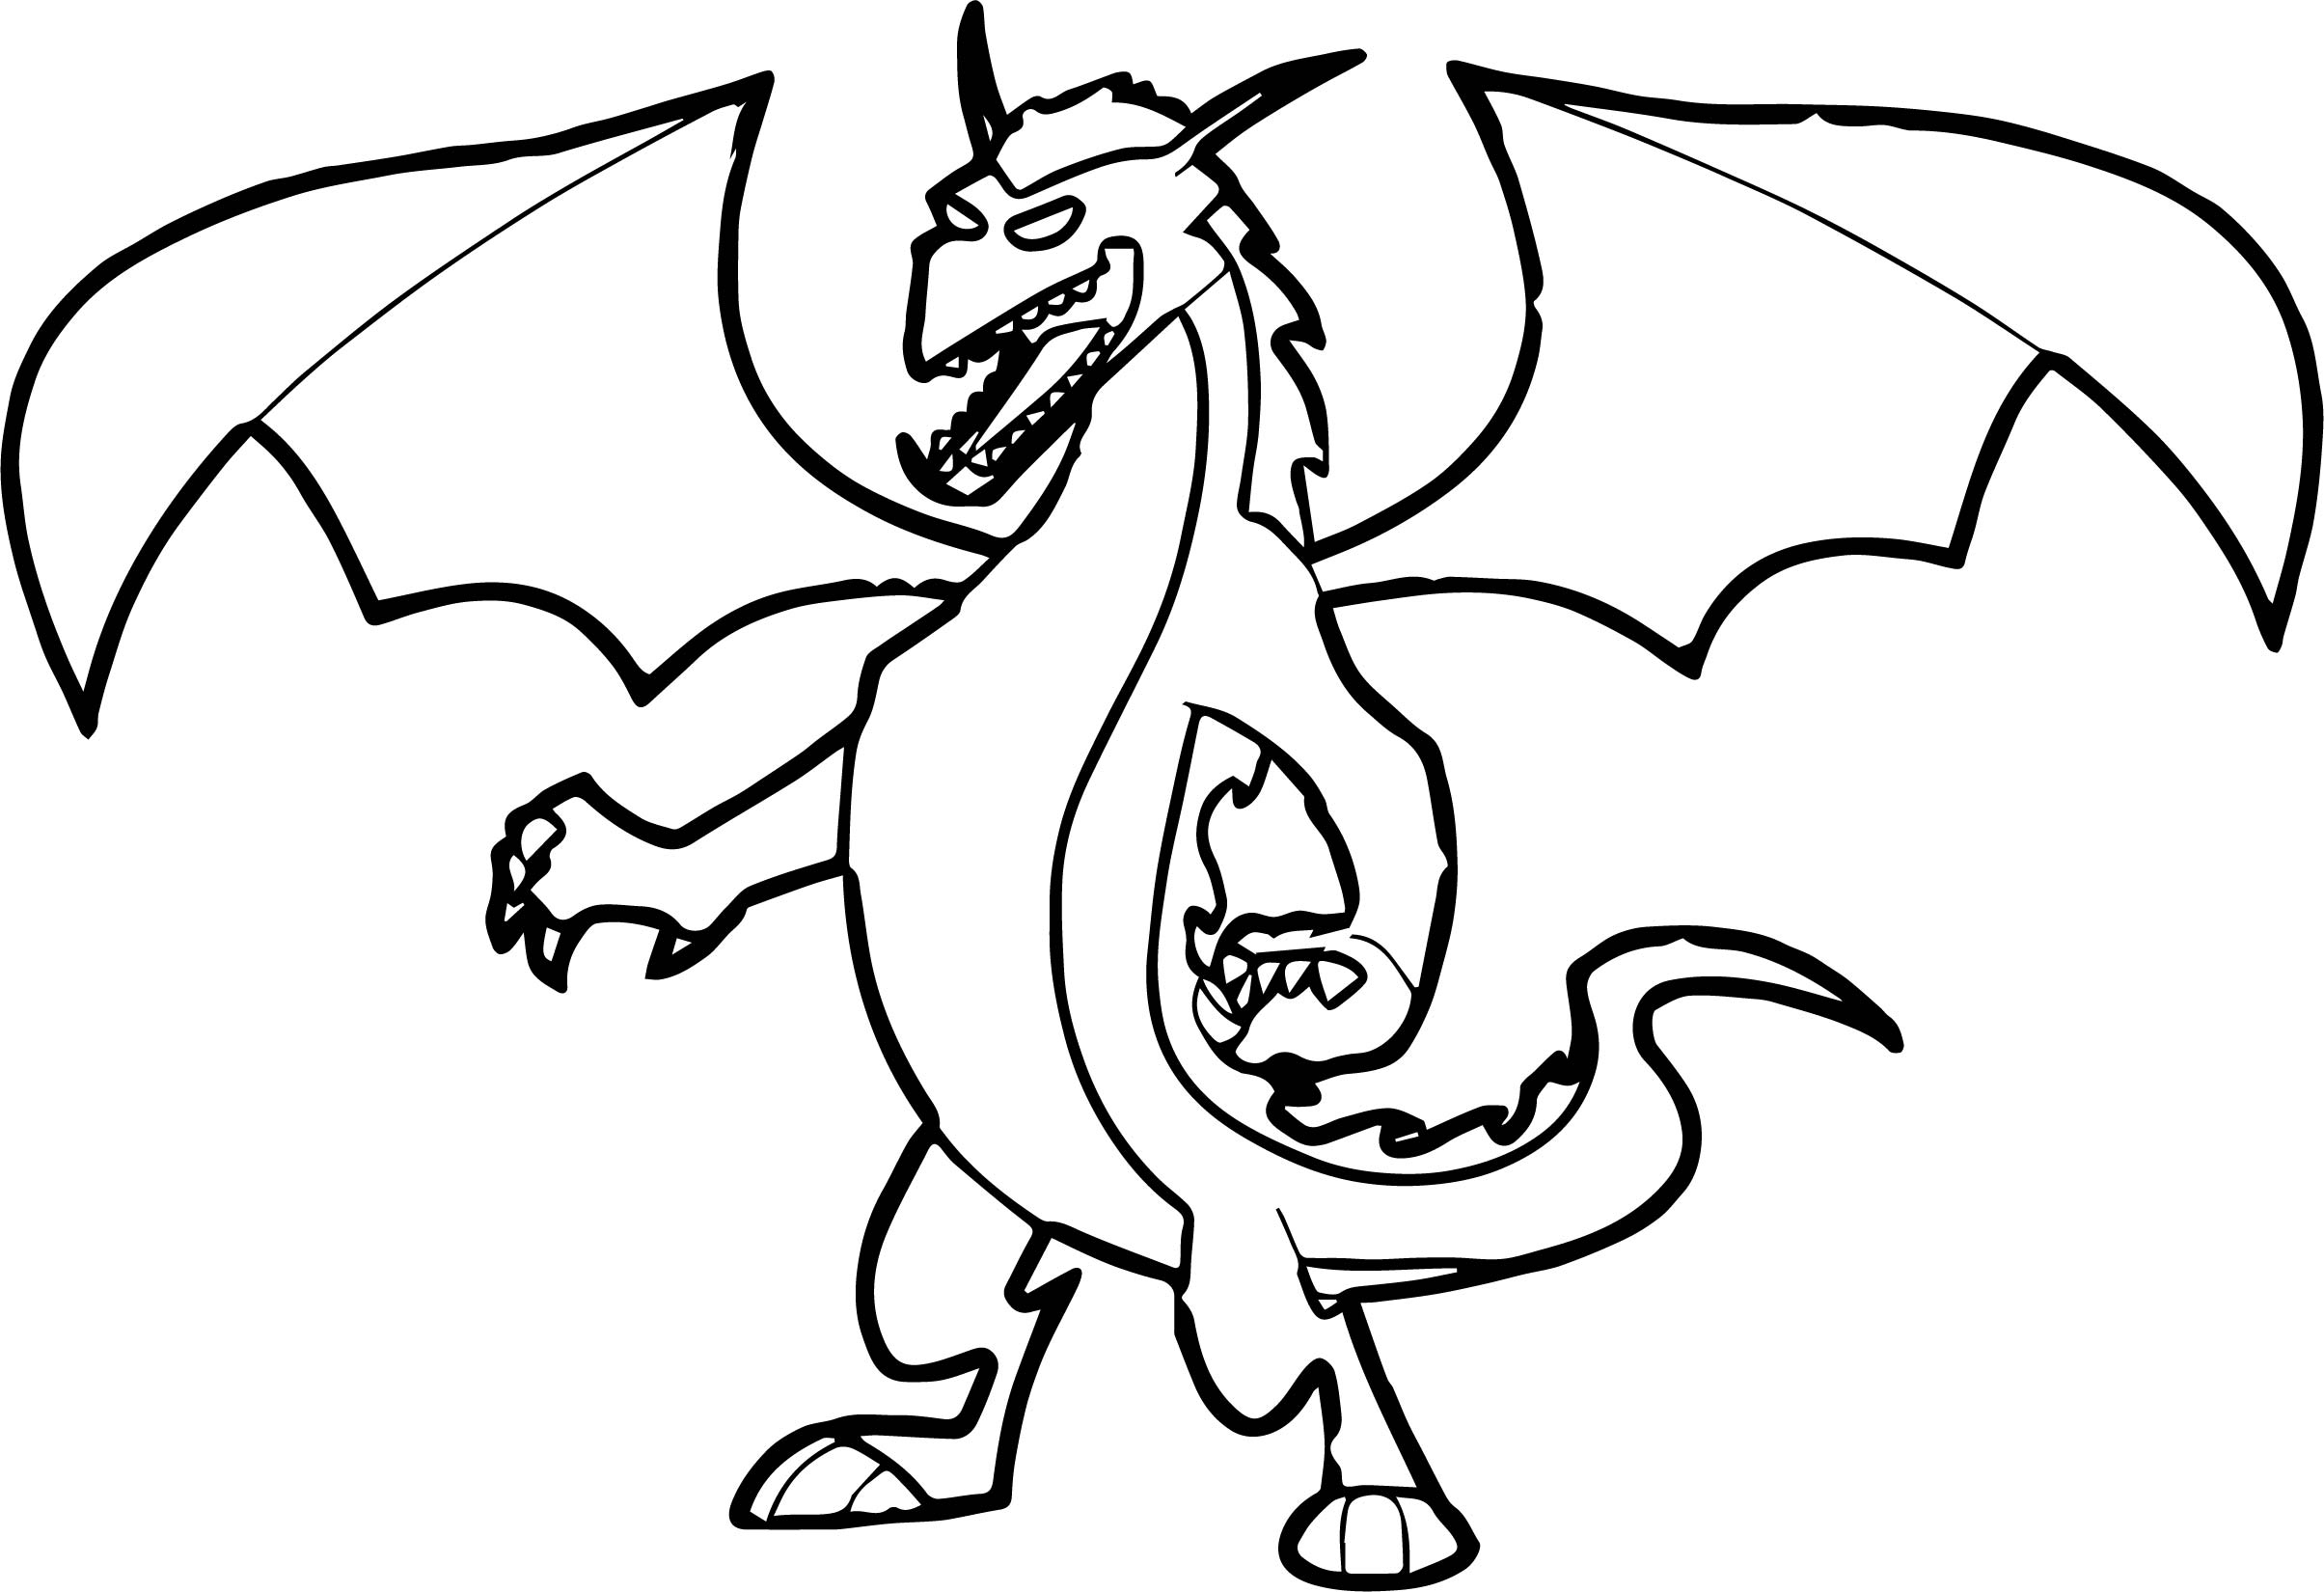 americon dragon coloring pages - photo#47